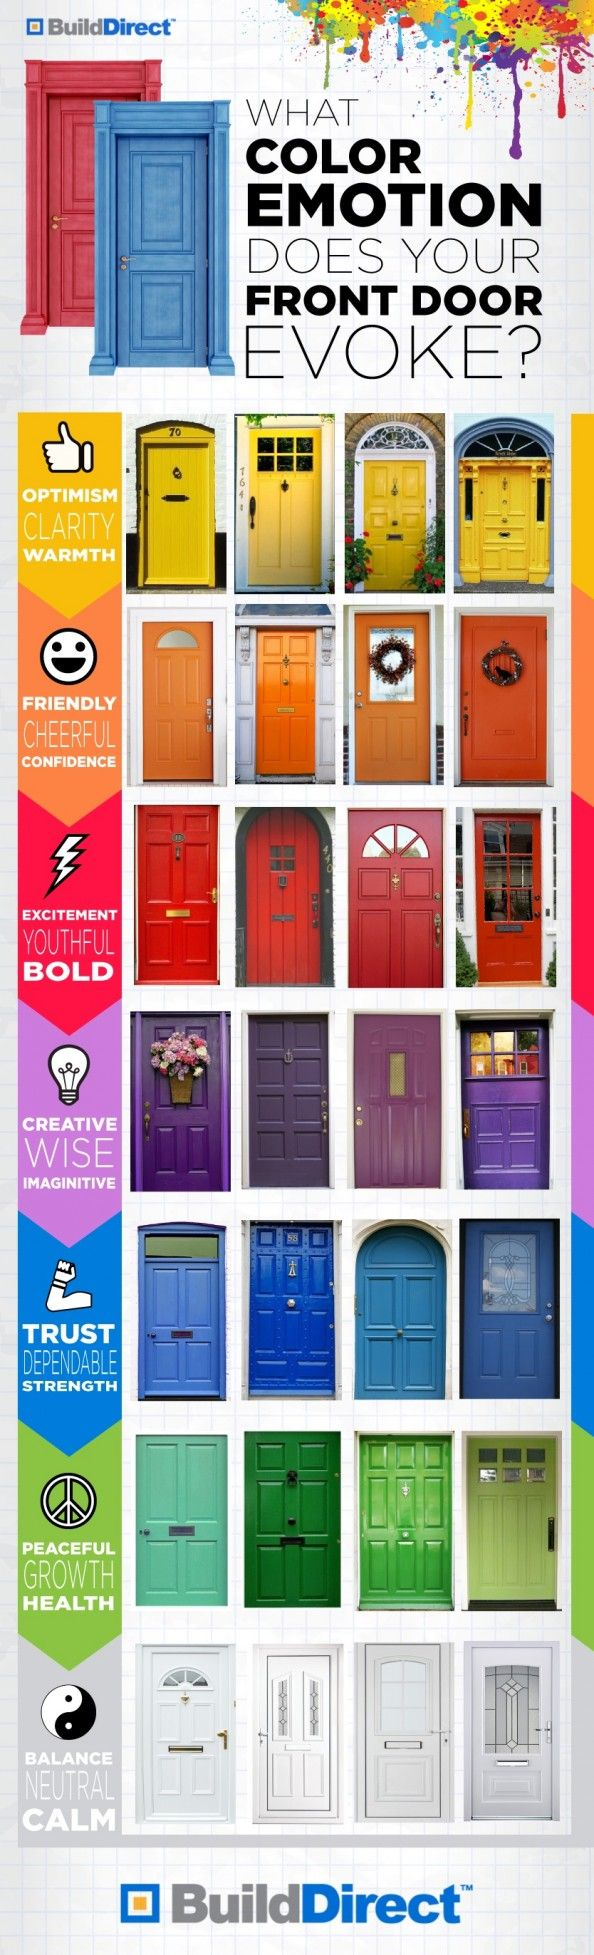 Color for front door  Mines red now, but I want to change it to green or purple. Or paint the tardis on it.